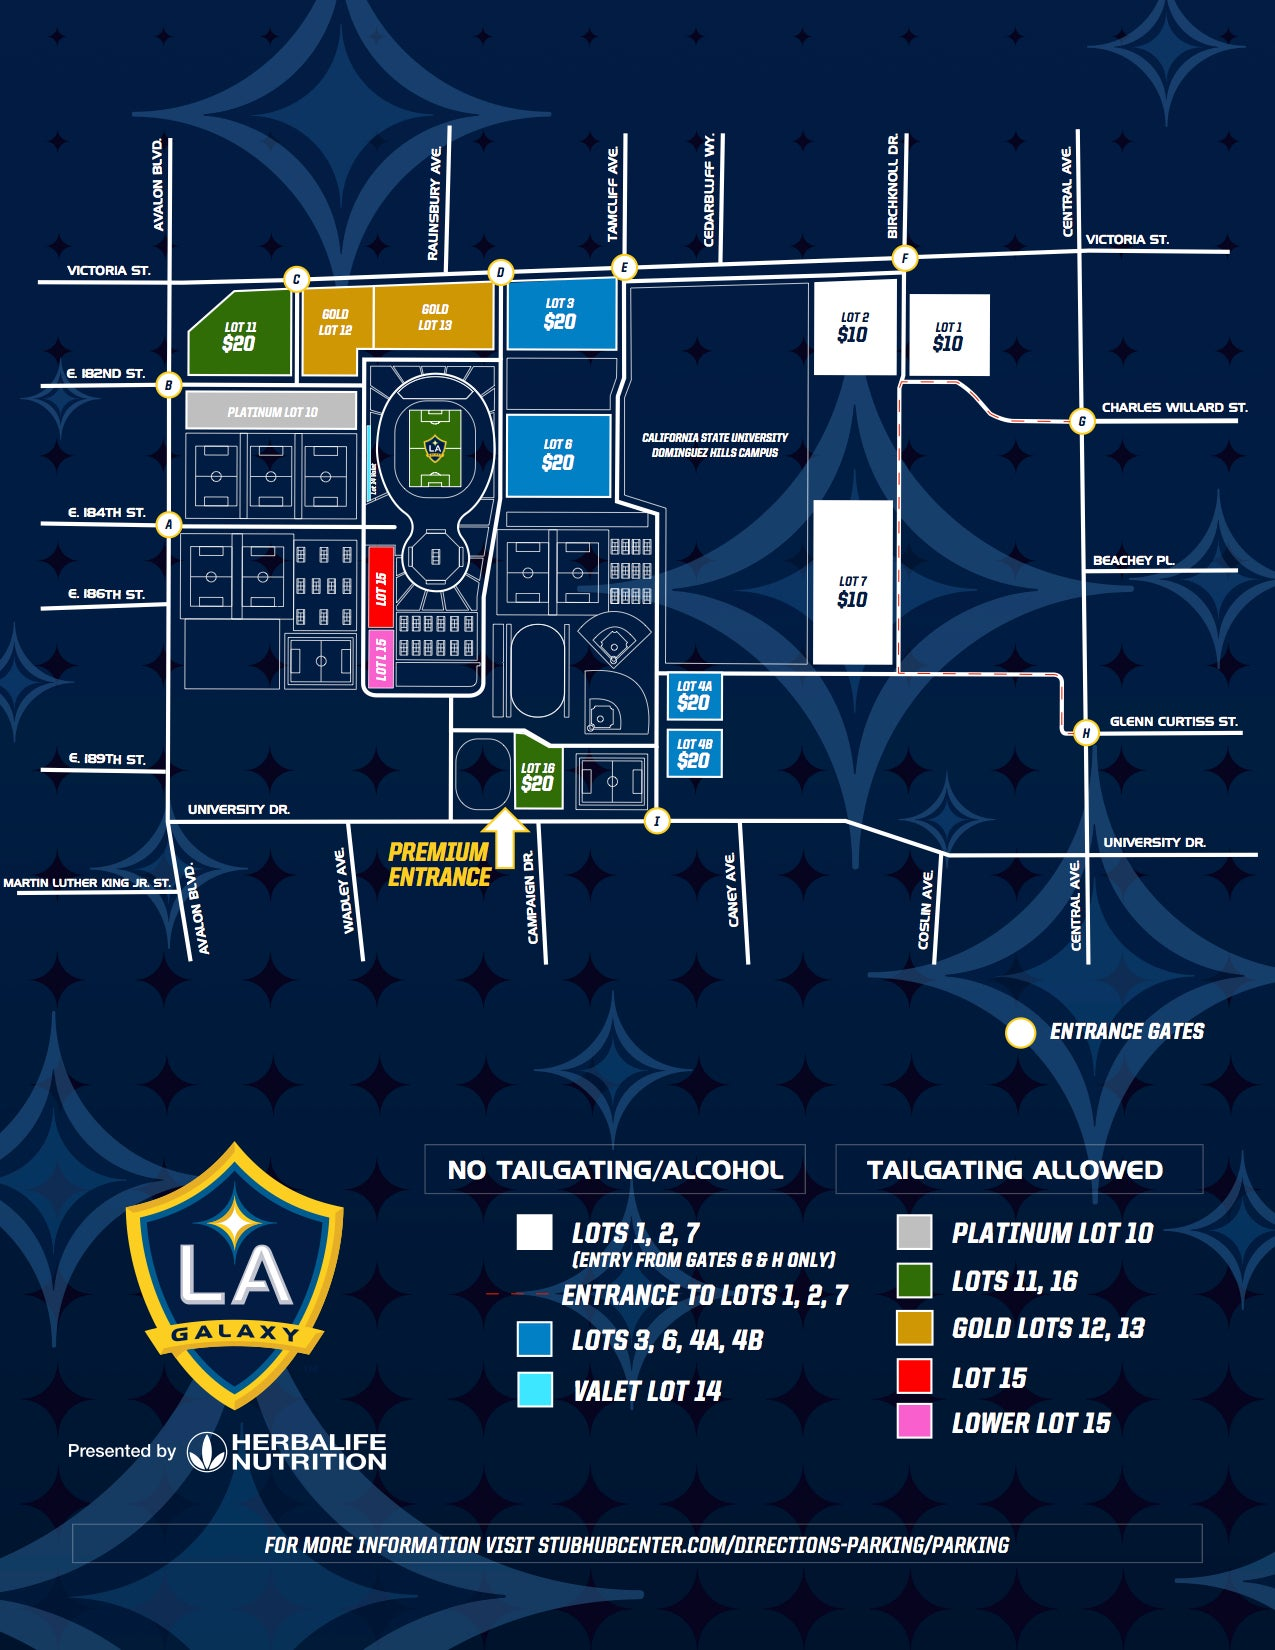 Parking And Traffic Information La Galaxy